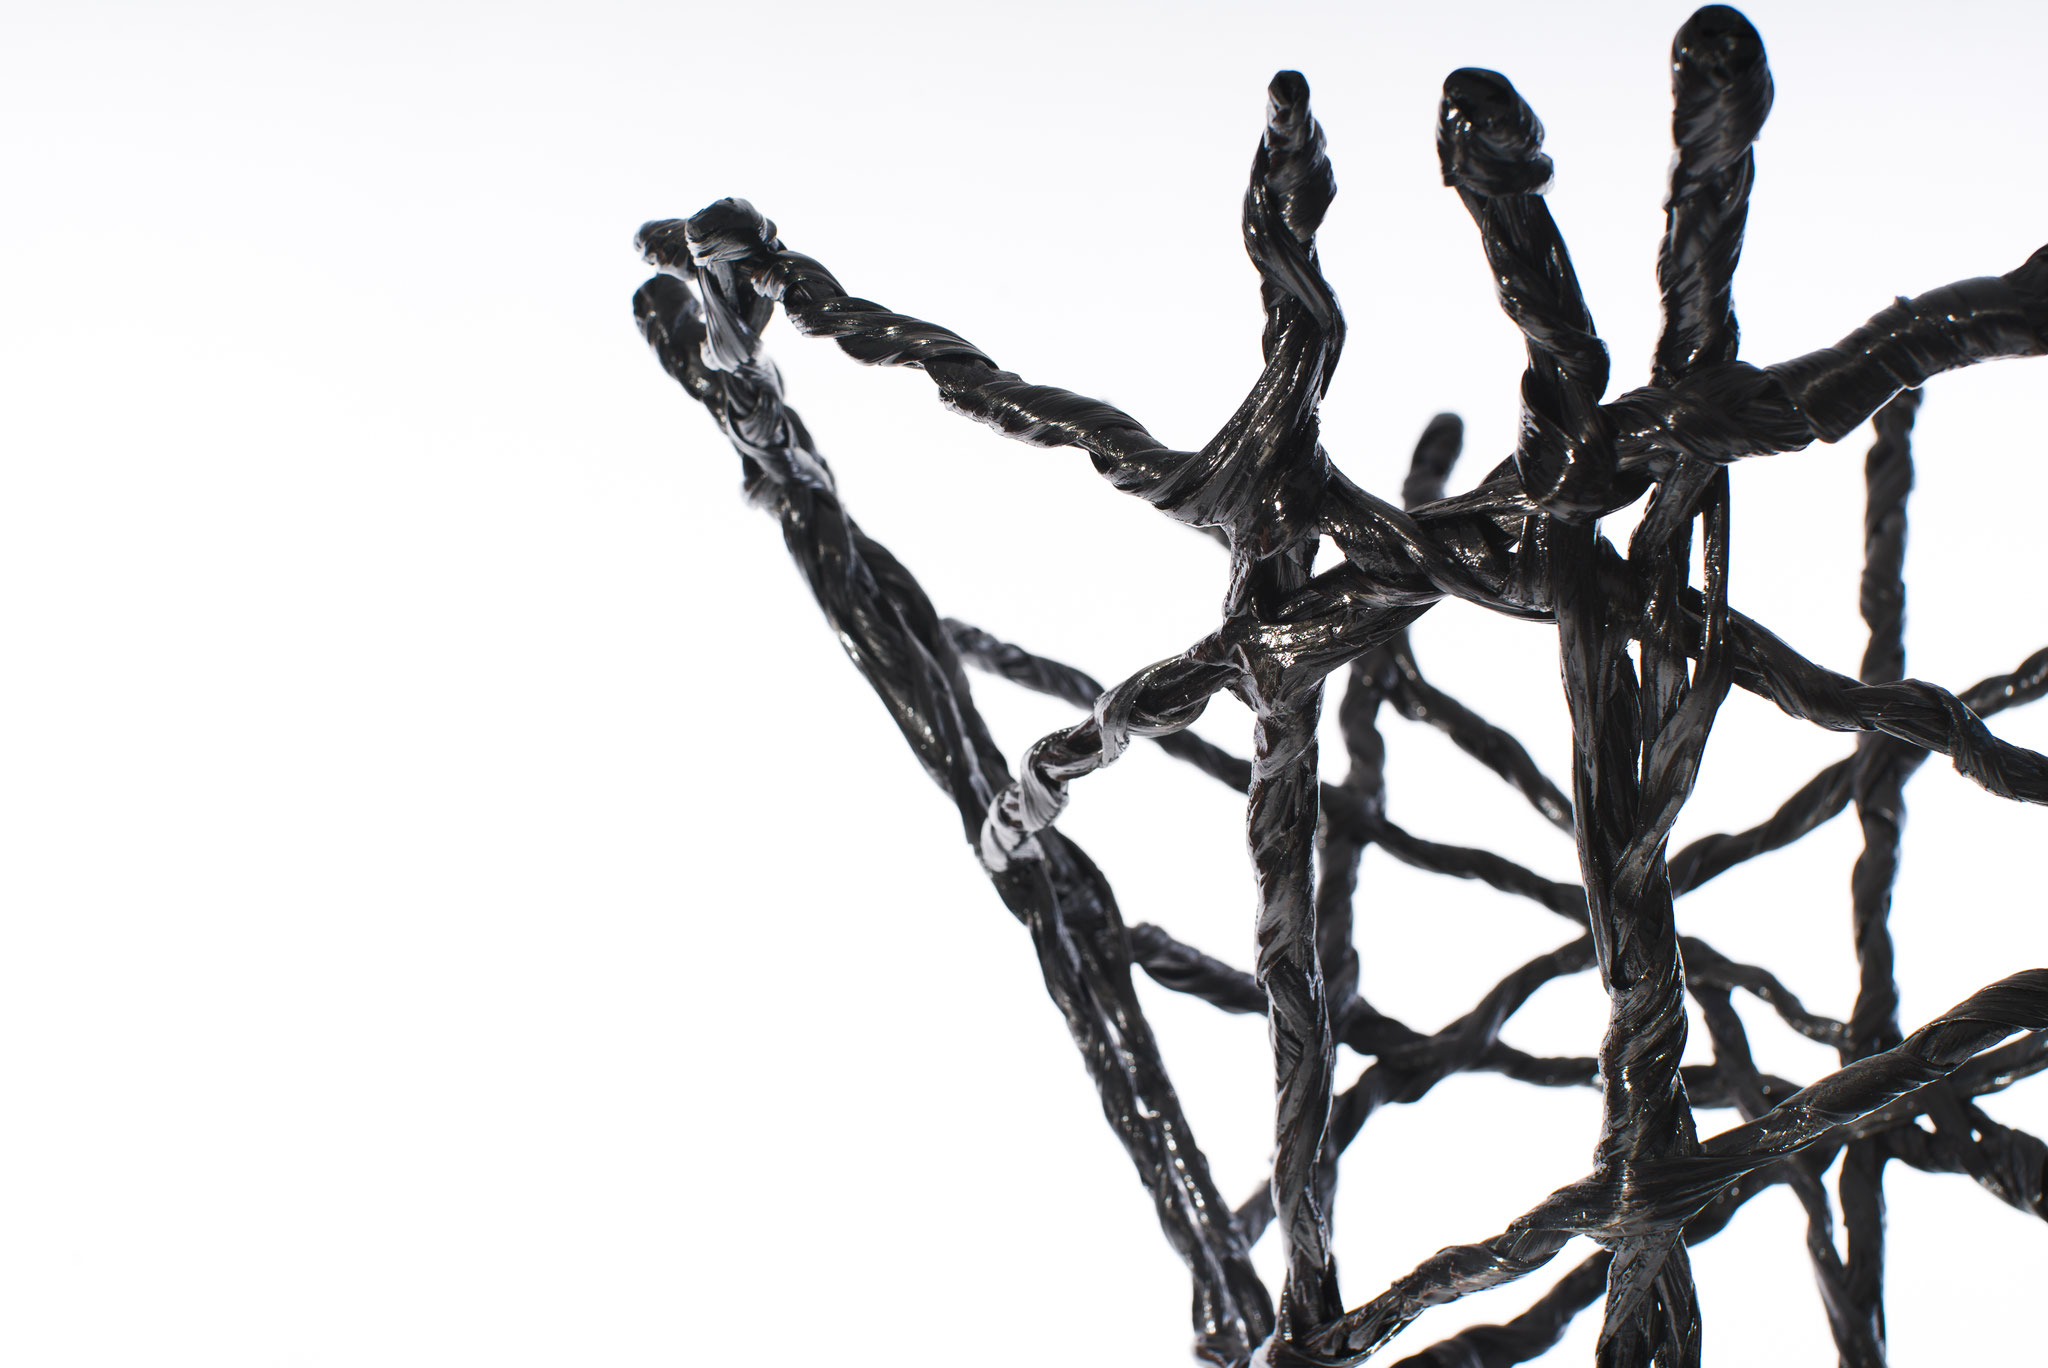 Constructive expressionism coat - tree, made out of carbon fiber and epoxy resin, H: 180cm, W: 60cm, L: 60cm